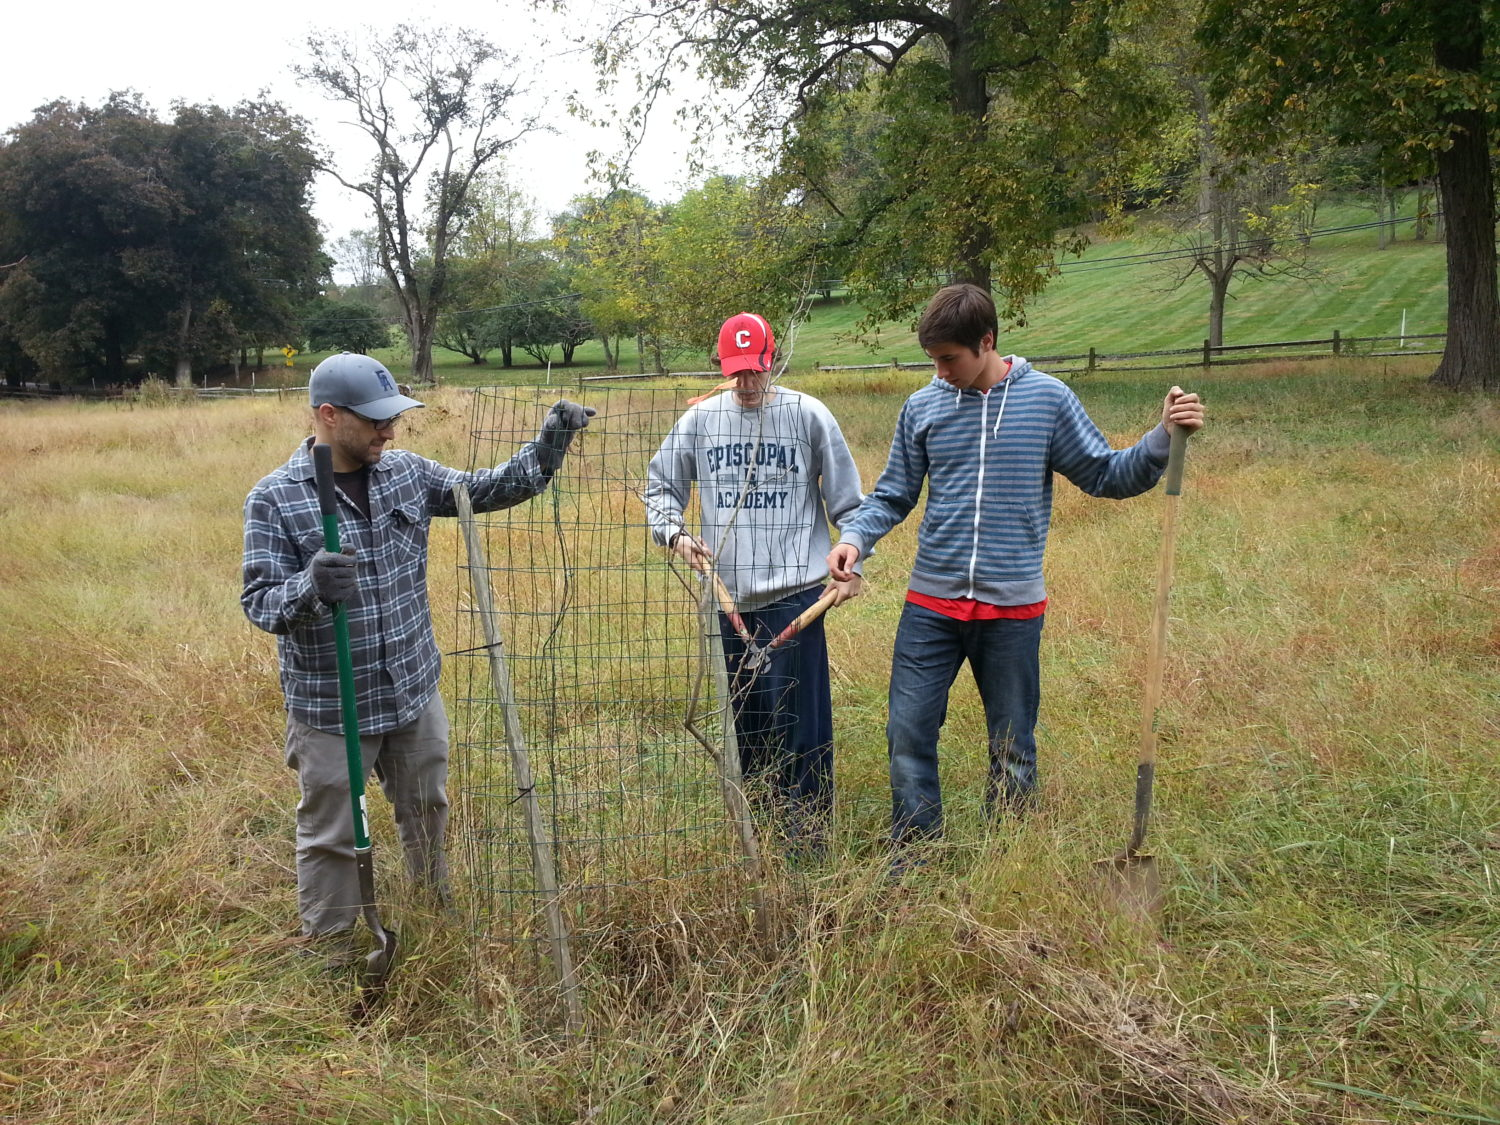 Interns make repairs and remove invasive vines from a cage that protects a young tree at Kirkwood Preserve.